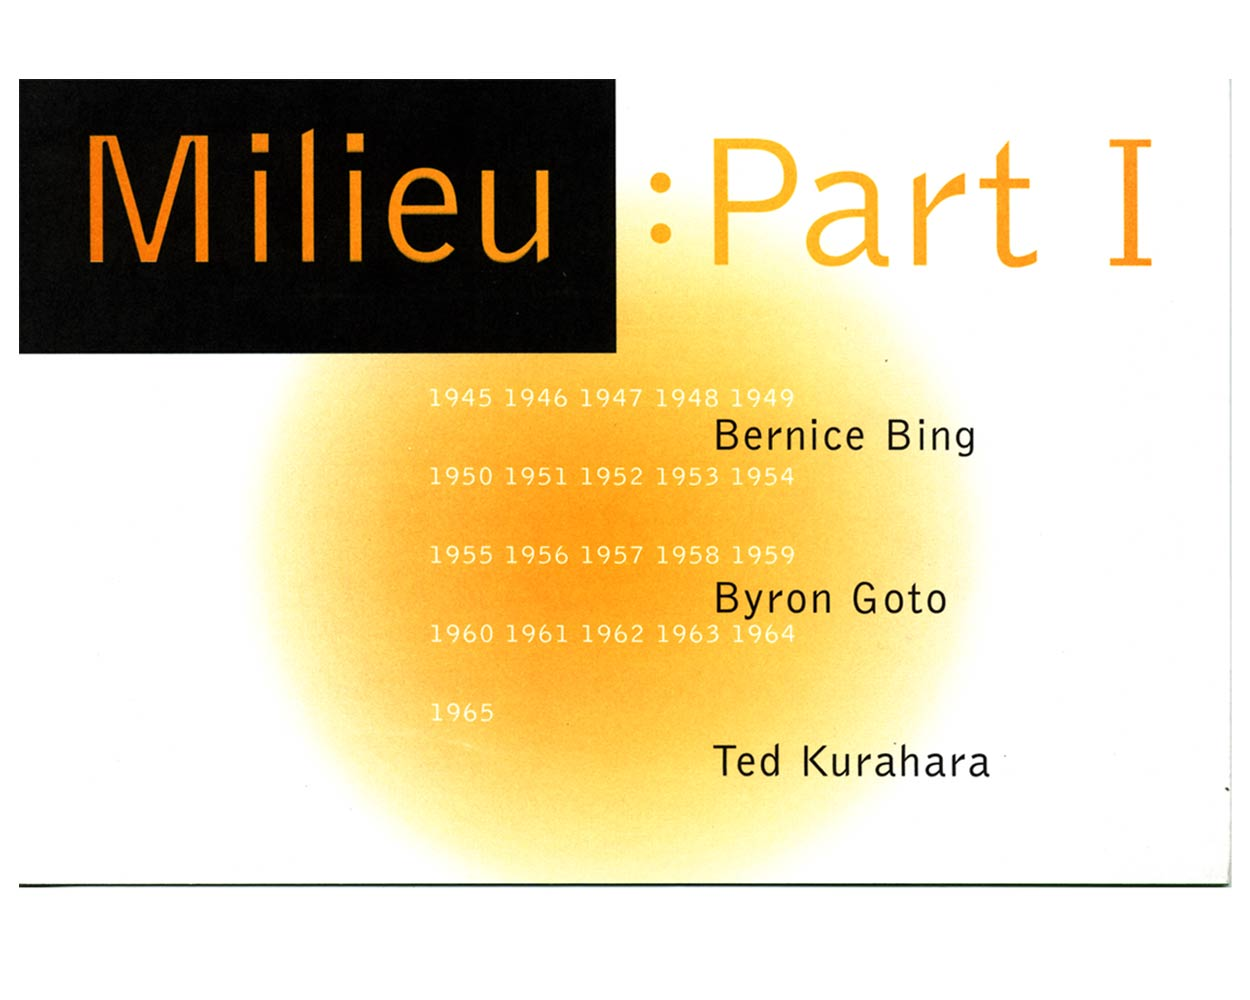 Exhibition flyer for Milieu Part: 1